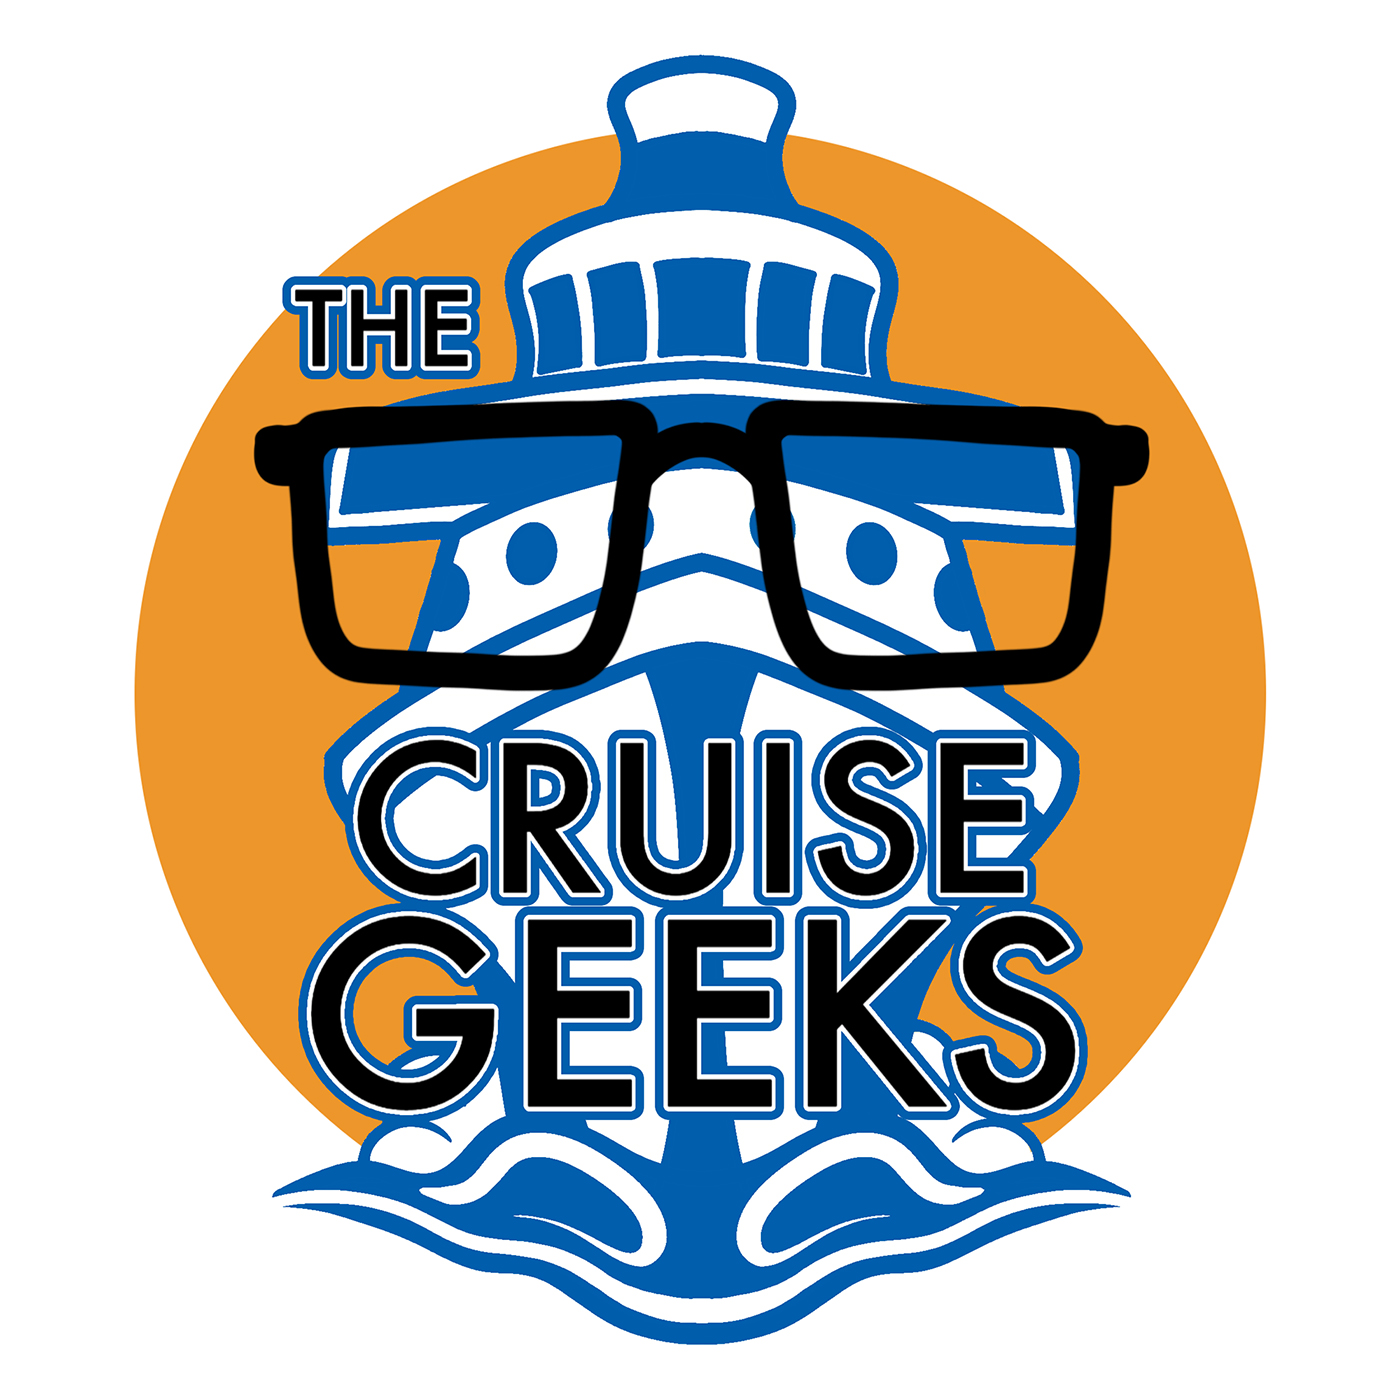 The Cruise Geeks Podcast Shelby Forsythia